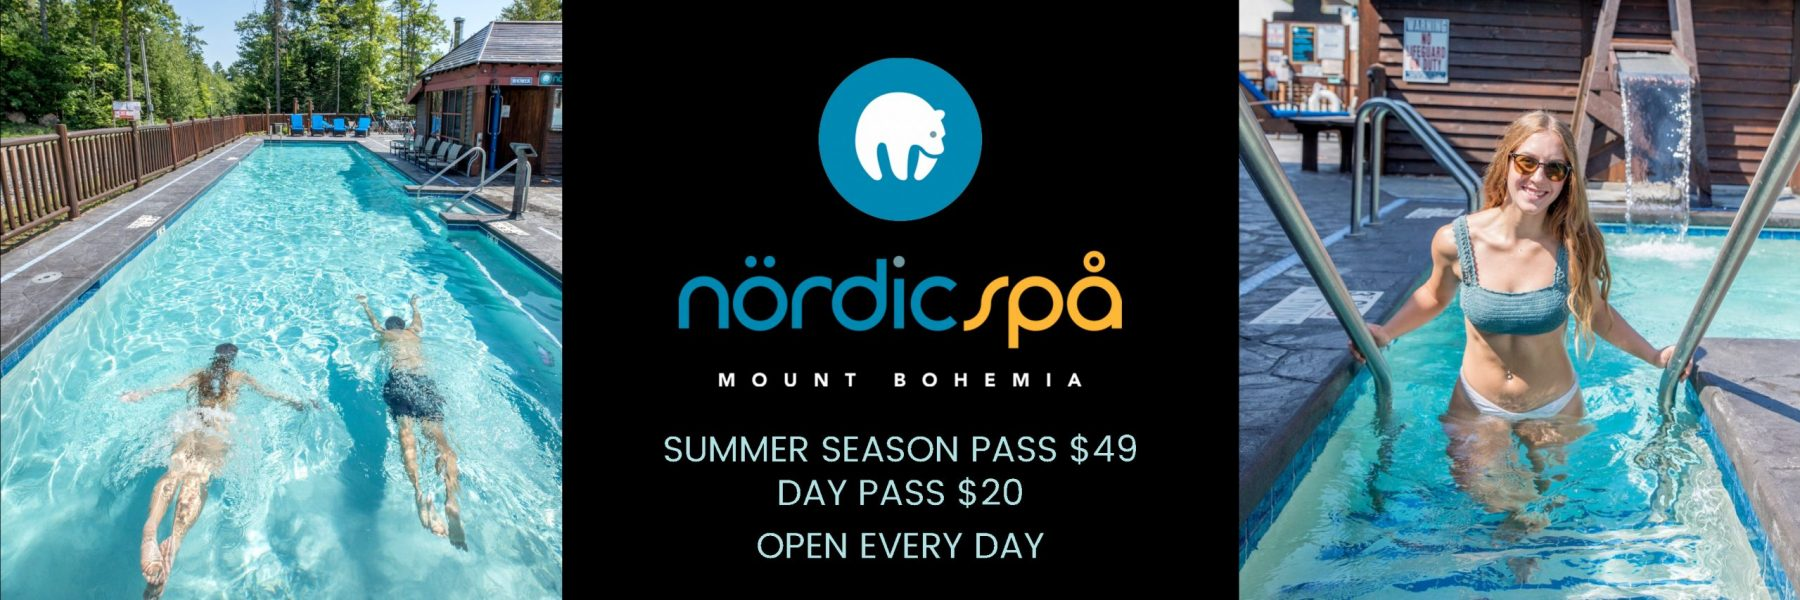 nordic spa reopening spring summer 2021